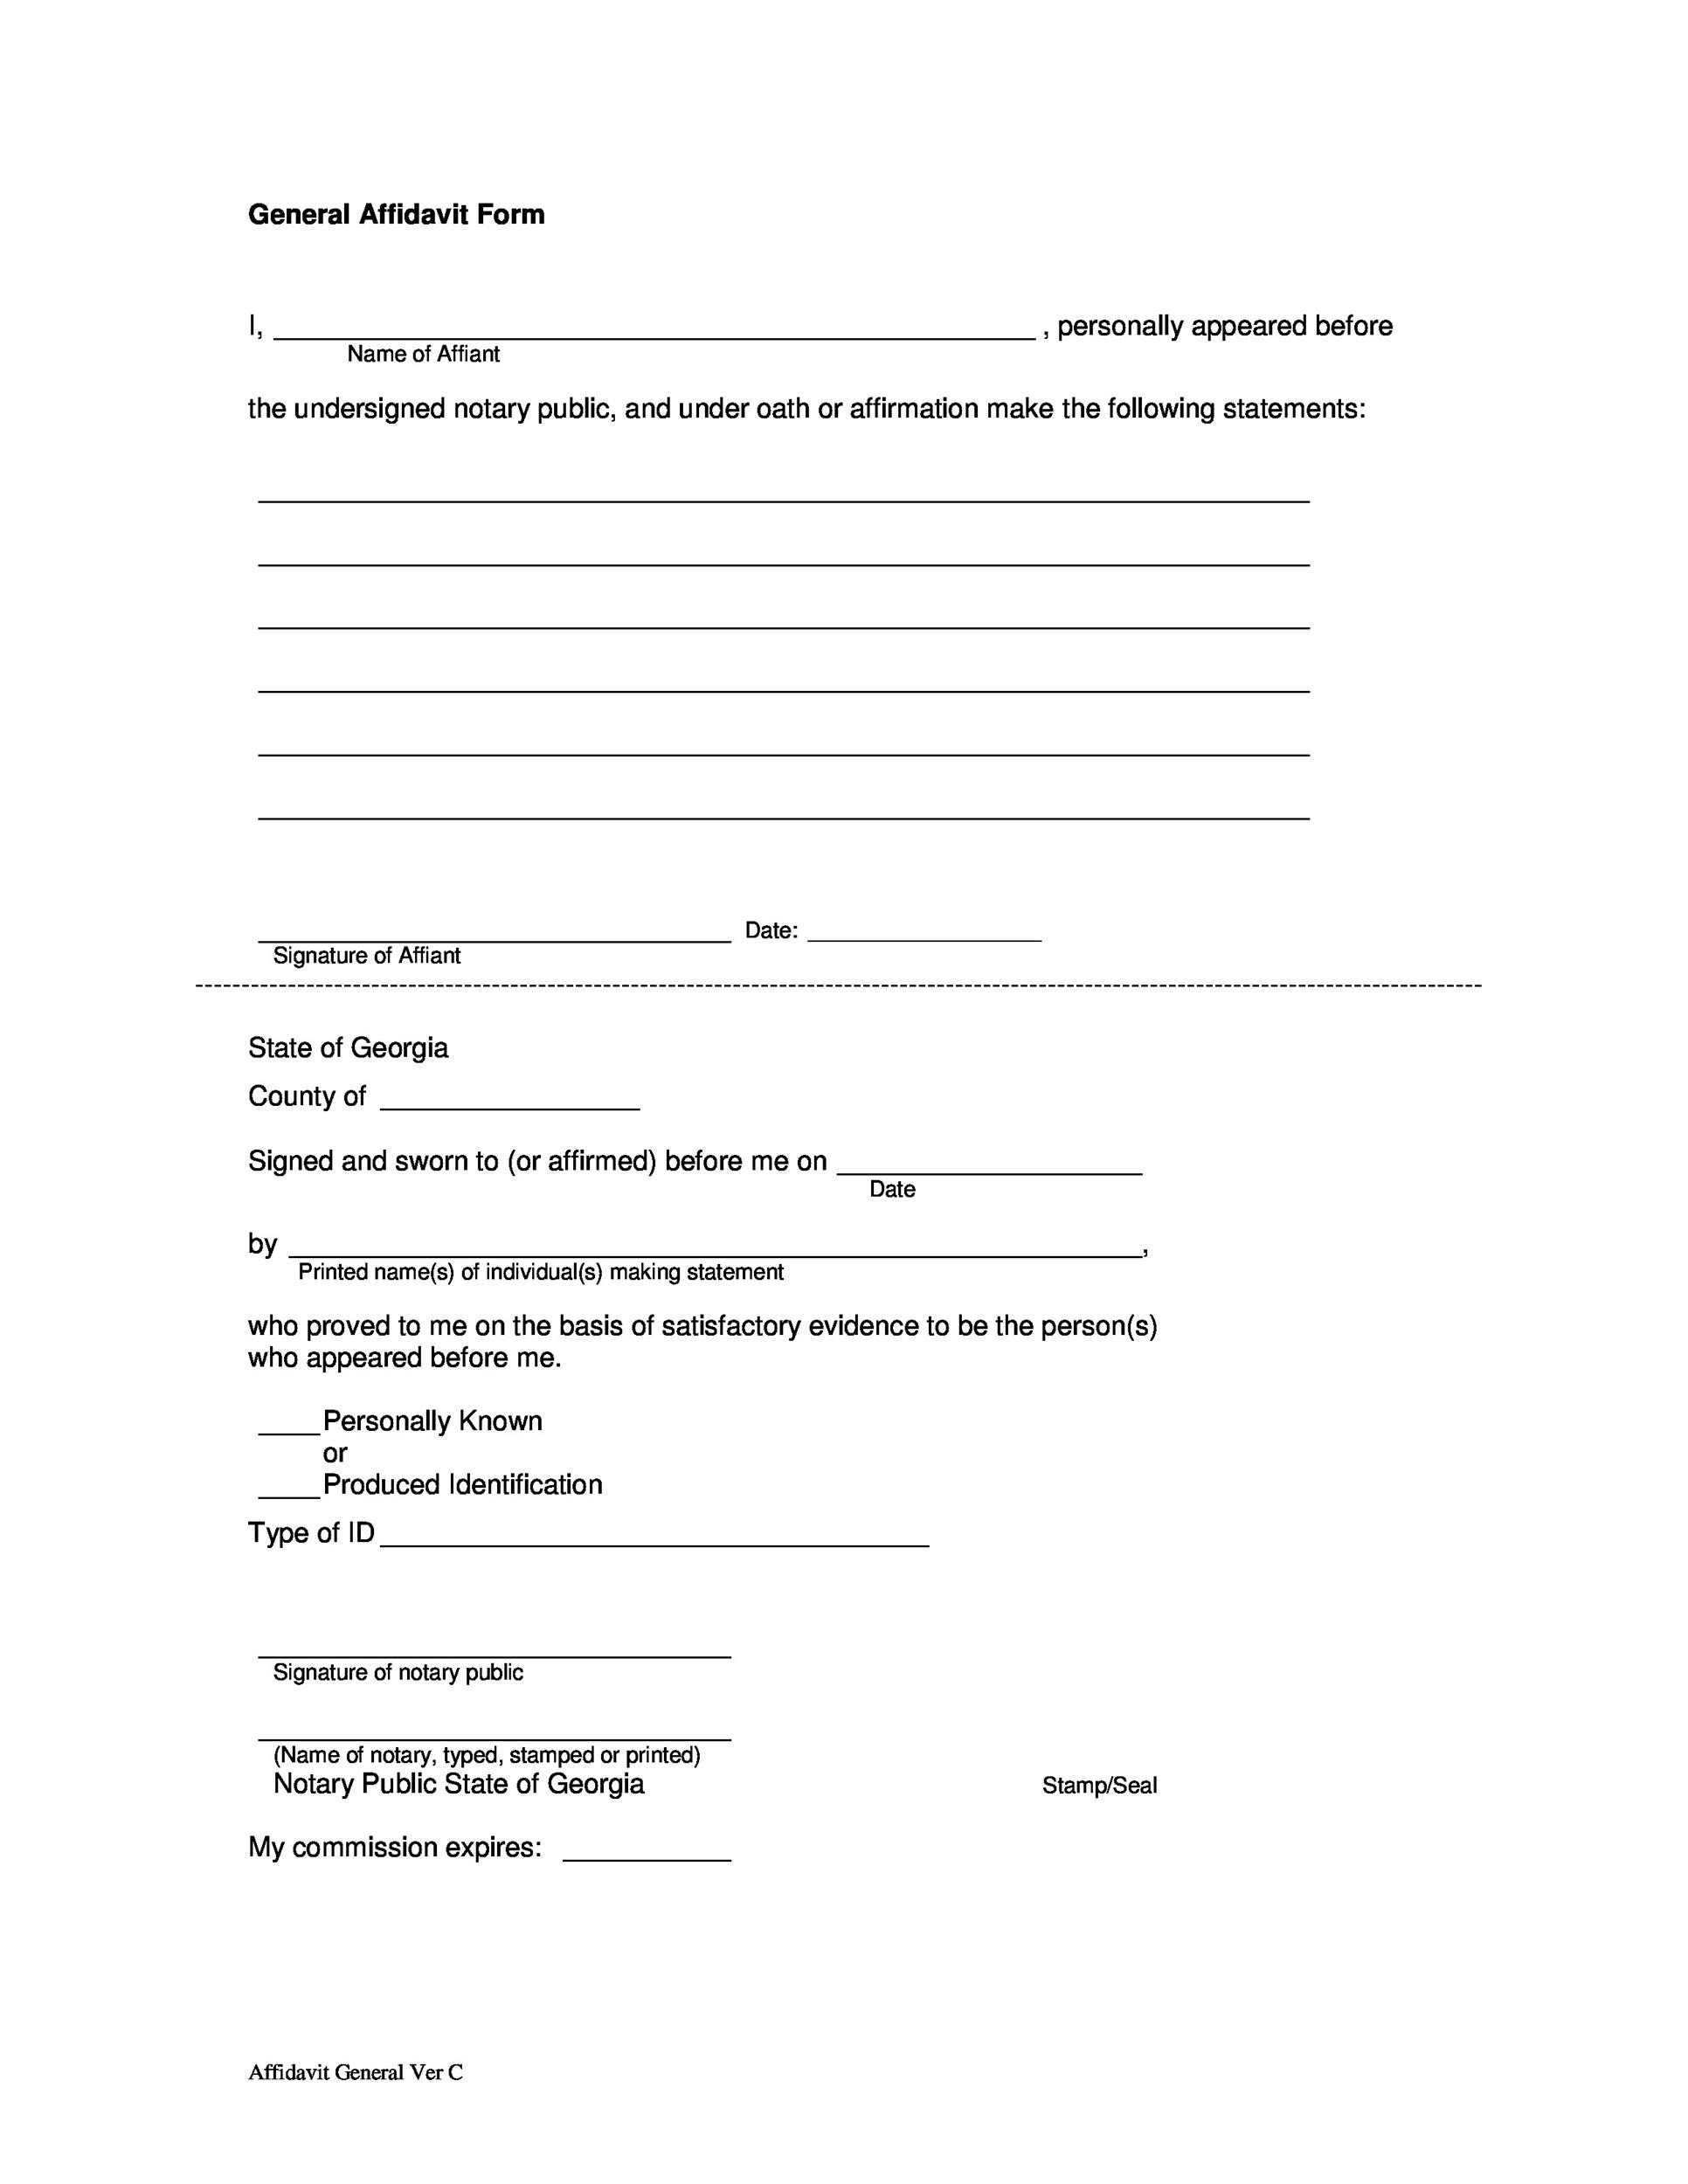 Delightful Printable Affidavit Form 12 Intended General Affidavit Example